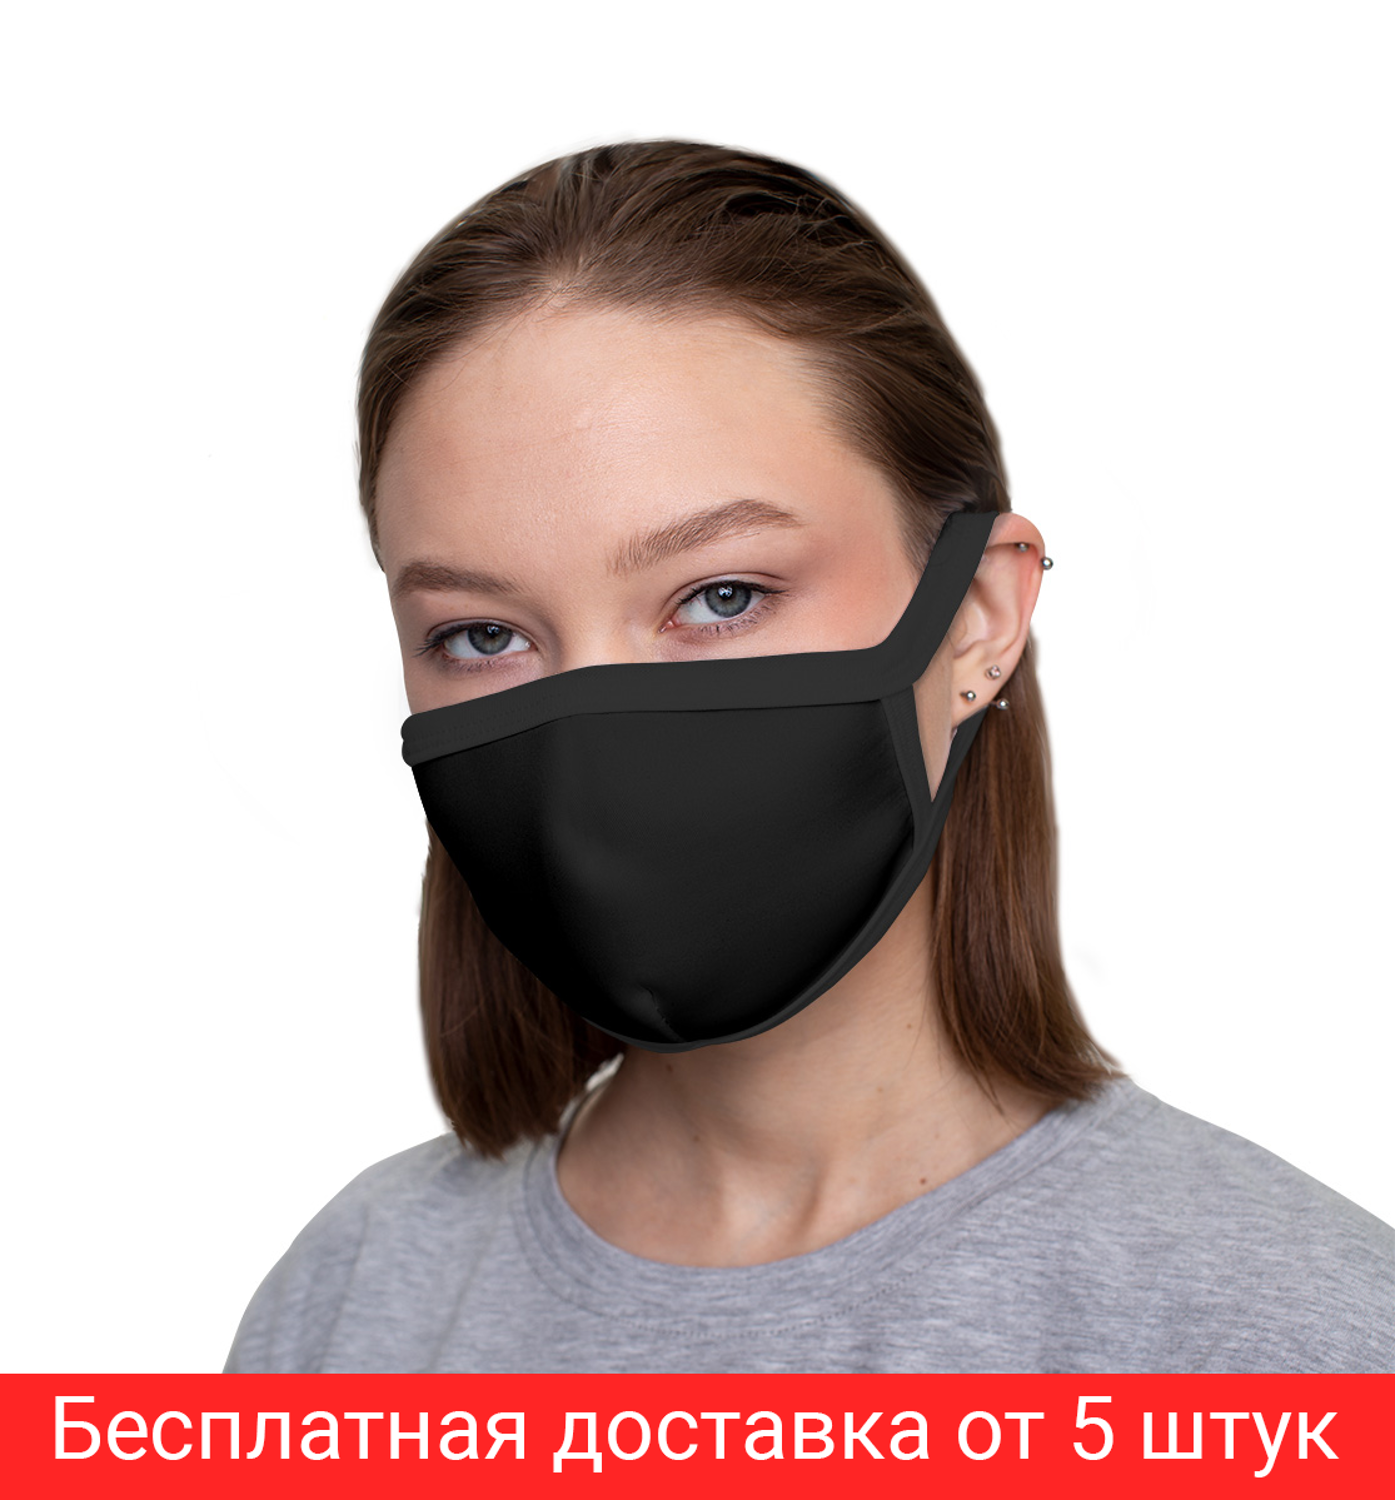 Mask Protective Cloth Black, Stylish Trend Cool Accessory, Anti Dust And Viruses